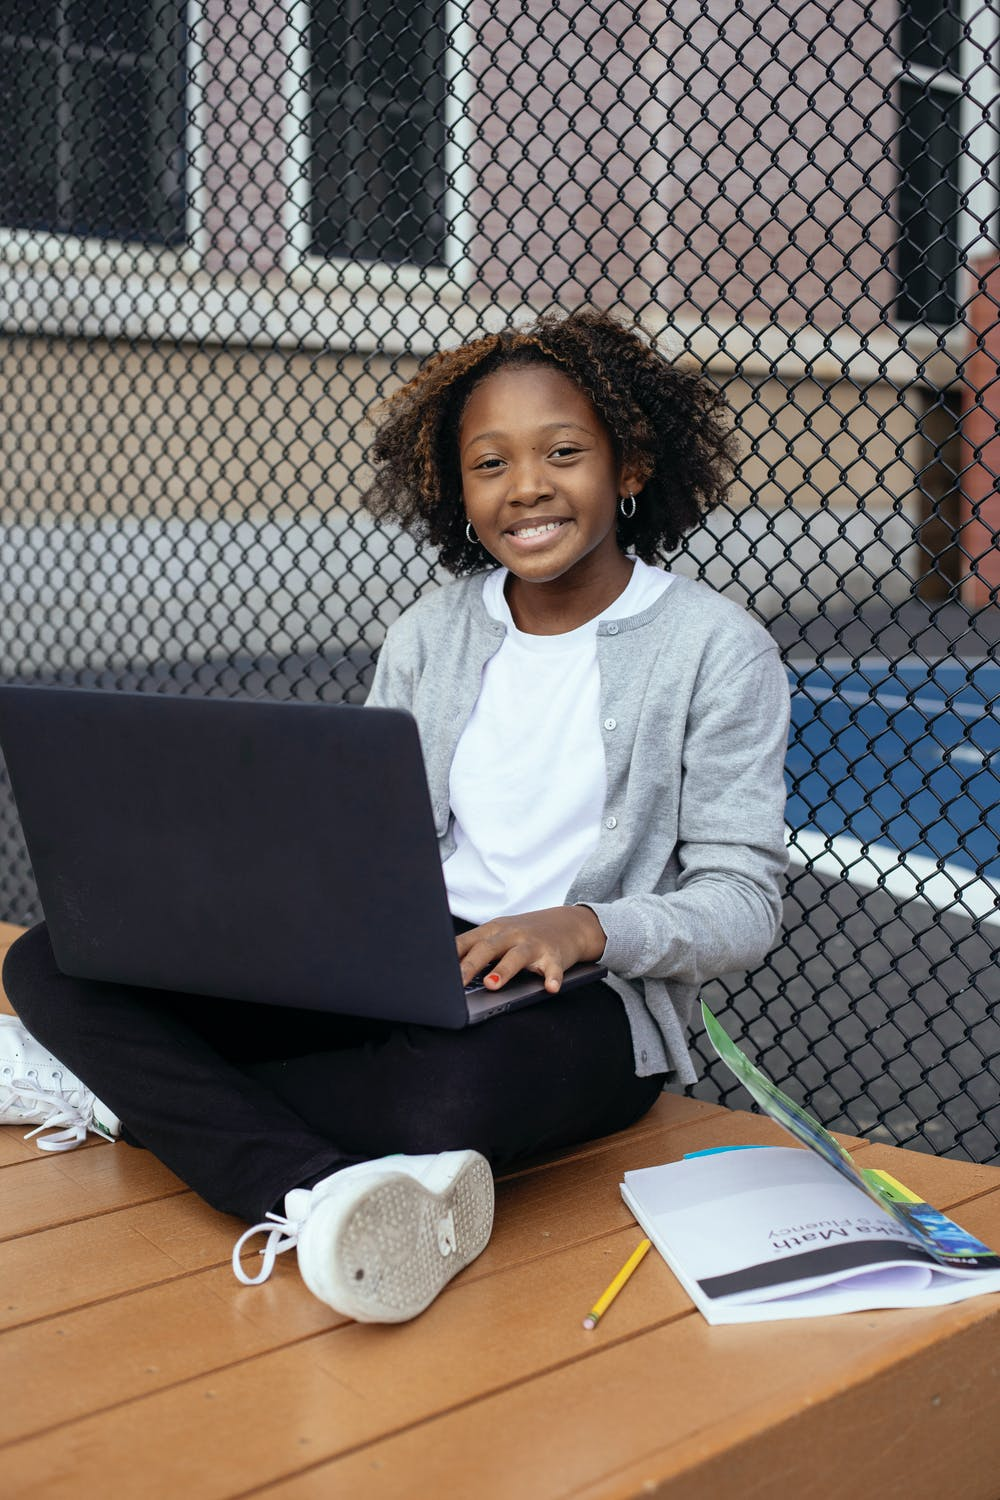 The Best Back-to-School Laptops for Your Kids